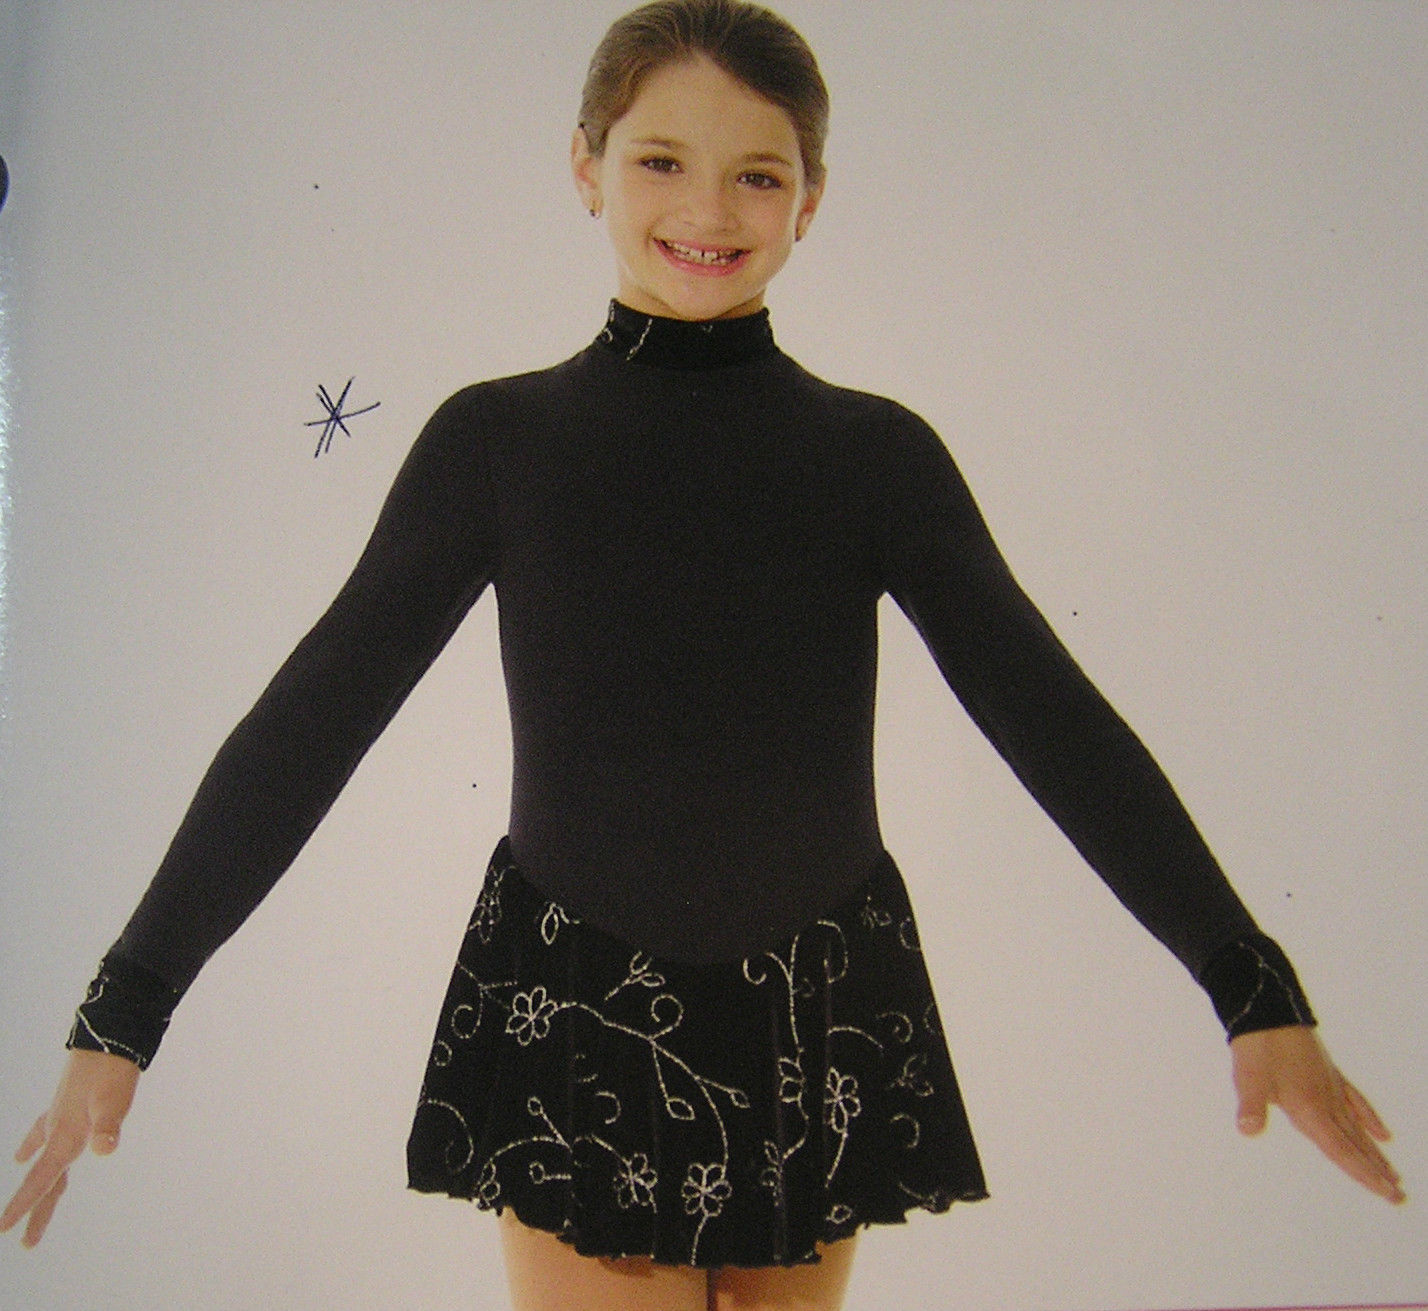 Primary image for Mondor Model 4403 Polartec Long Sleeve Skating Dress Color DD Size 8-10